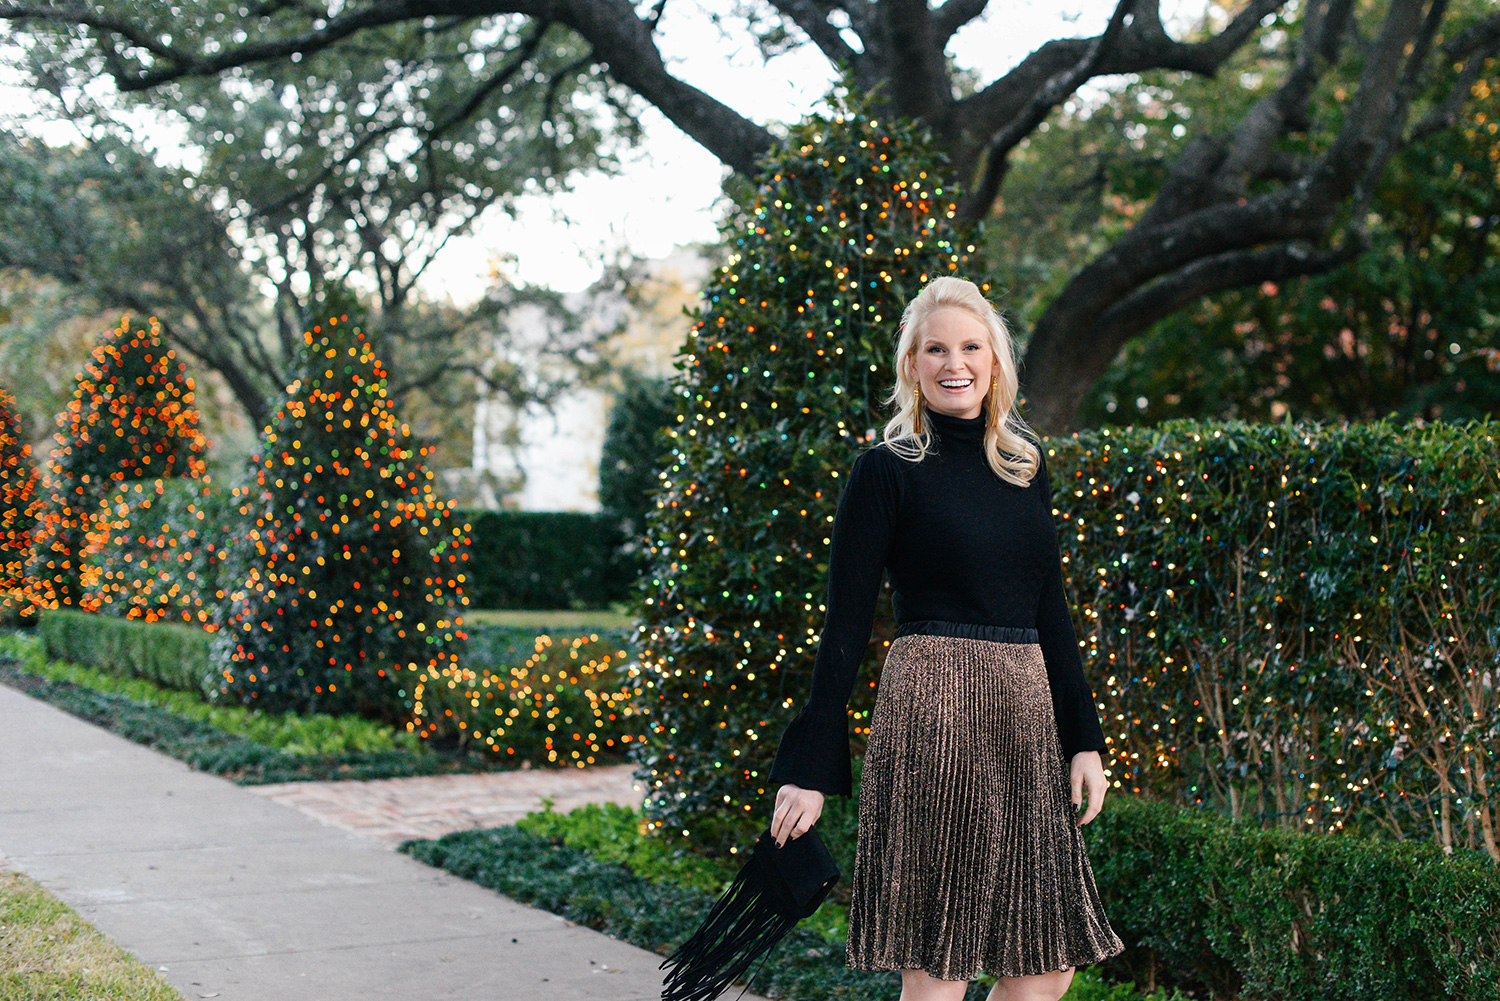 Sweater and skirt combo for holiday parties